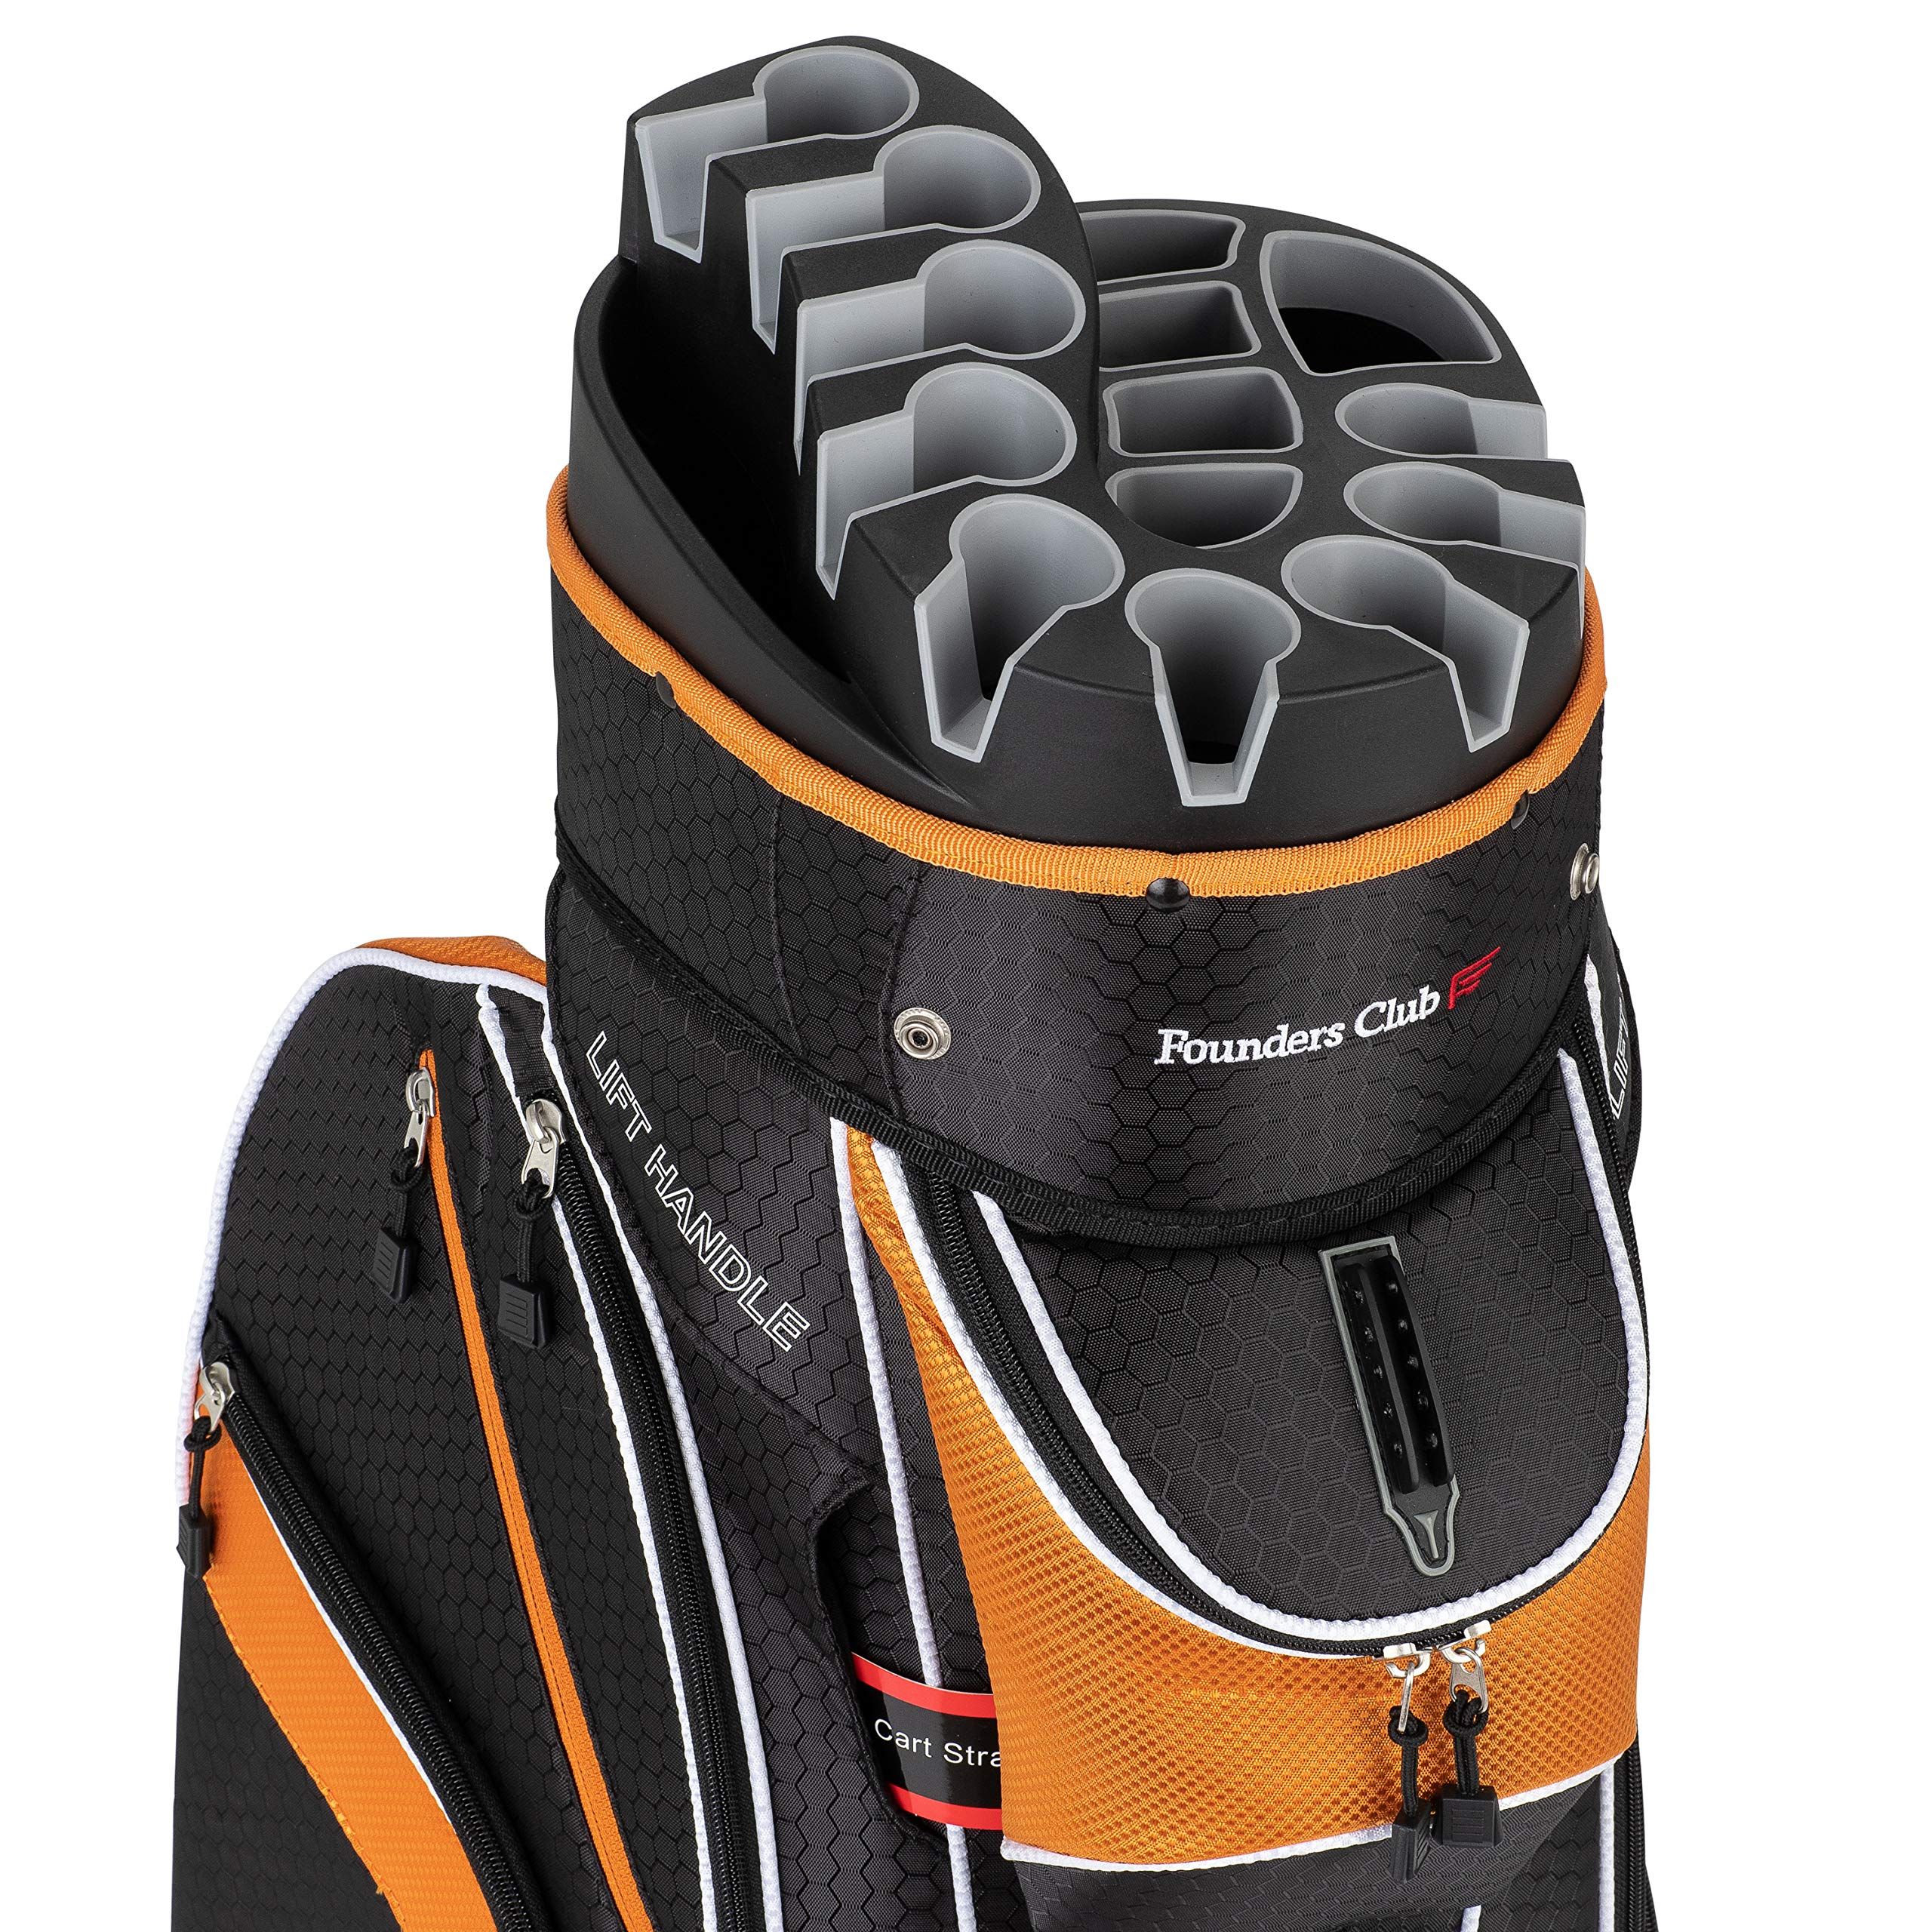 Founders Club Premium Cart Bag with 14 Way Organizer Divider Top (Orange and Black) by Founders Club